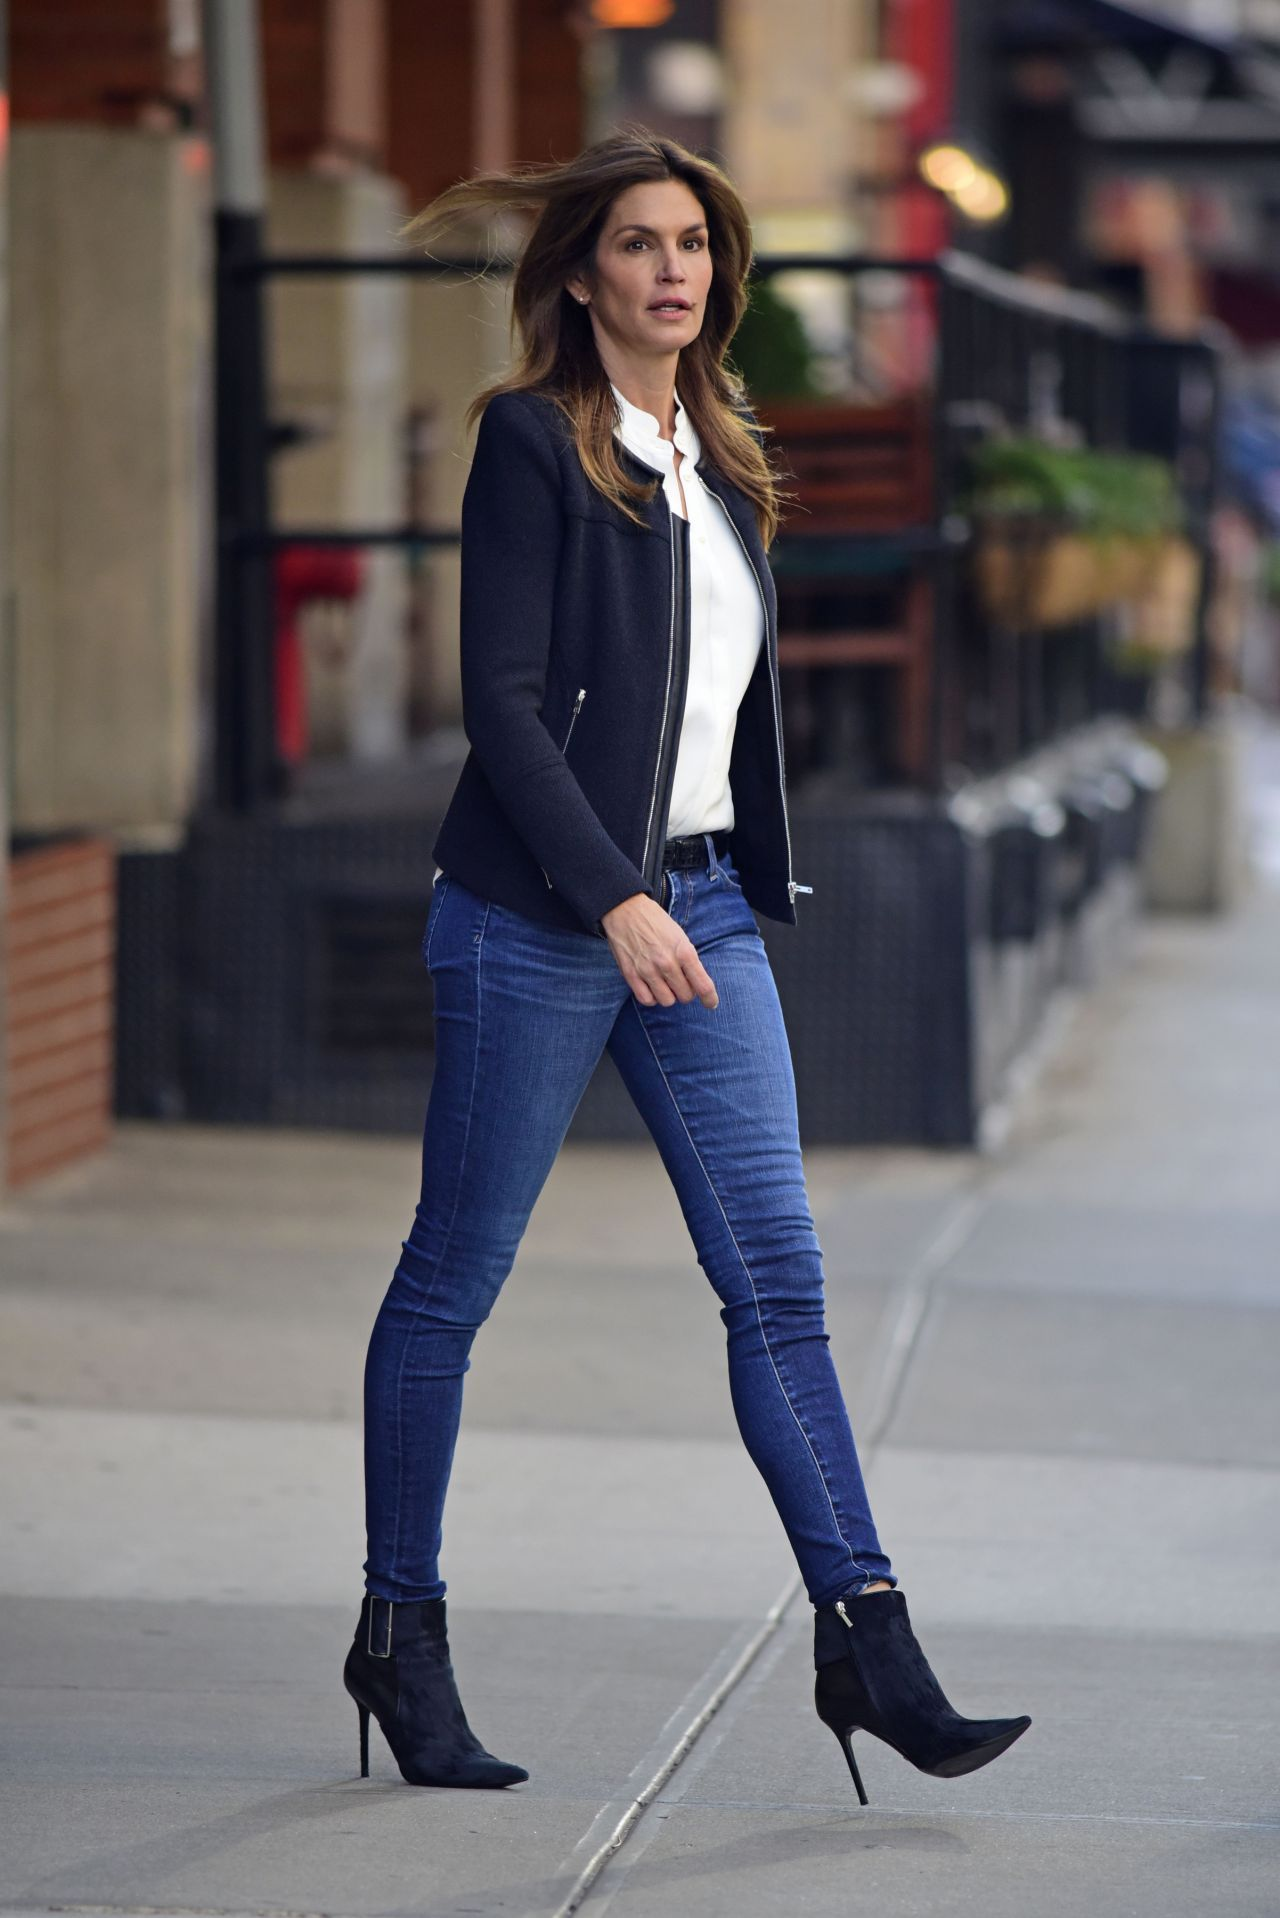 cindy crawford in tight jeans - leaving her hotel in new york city